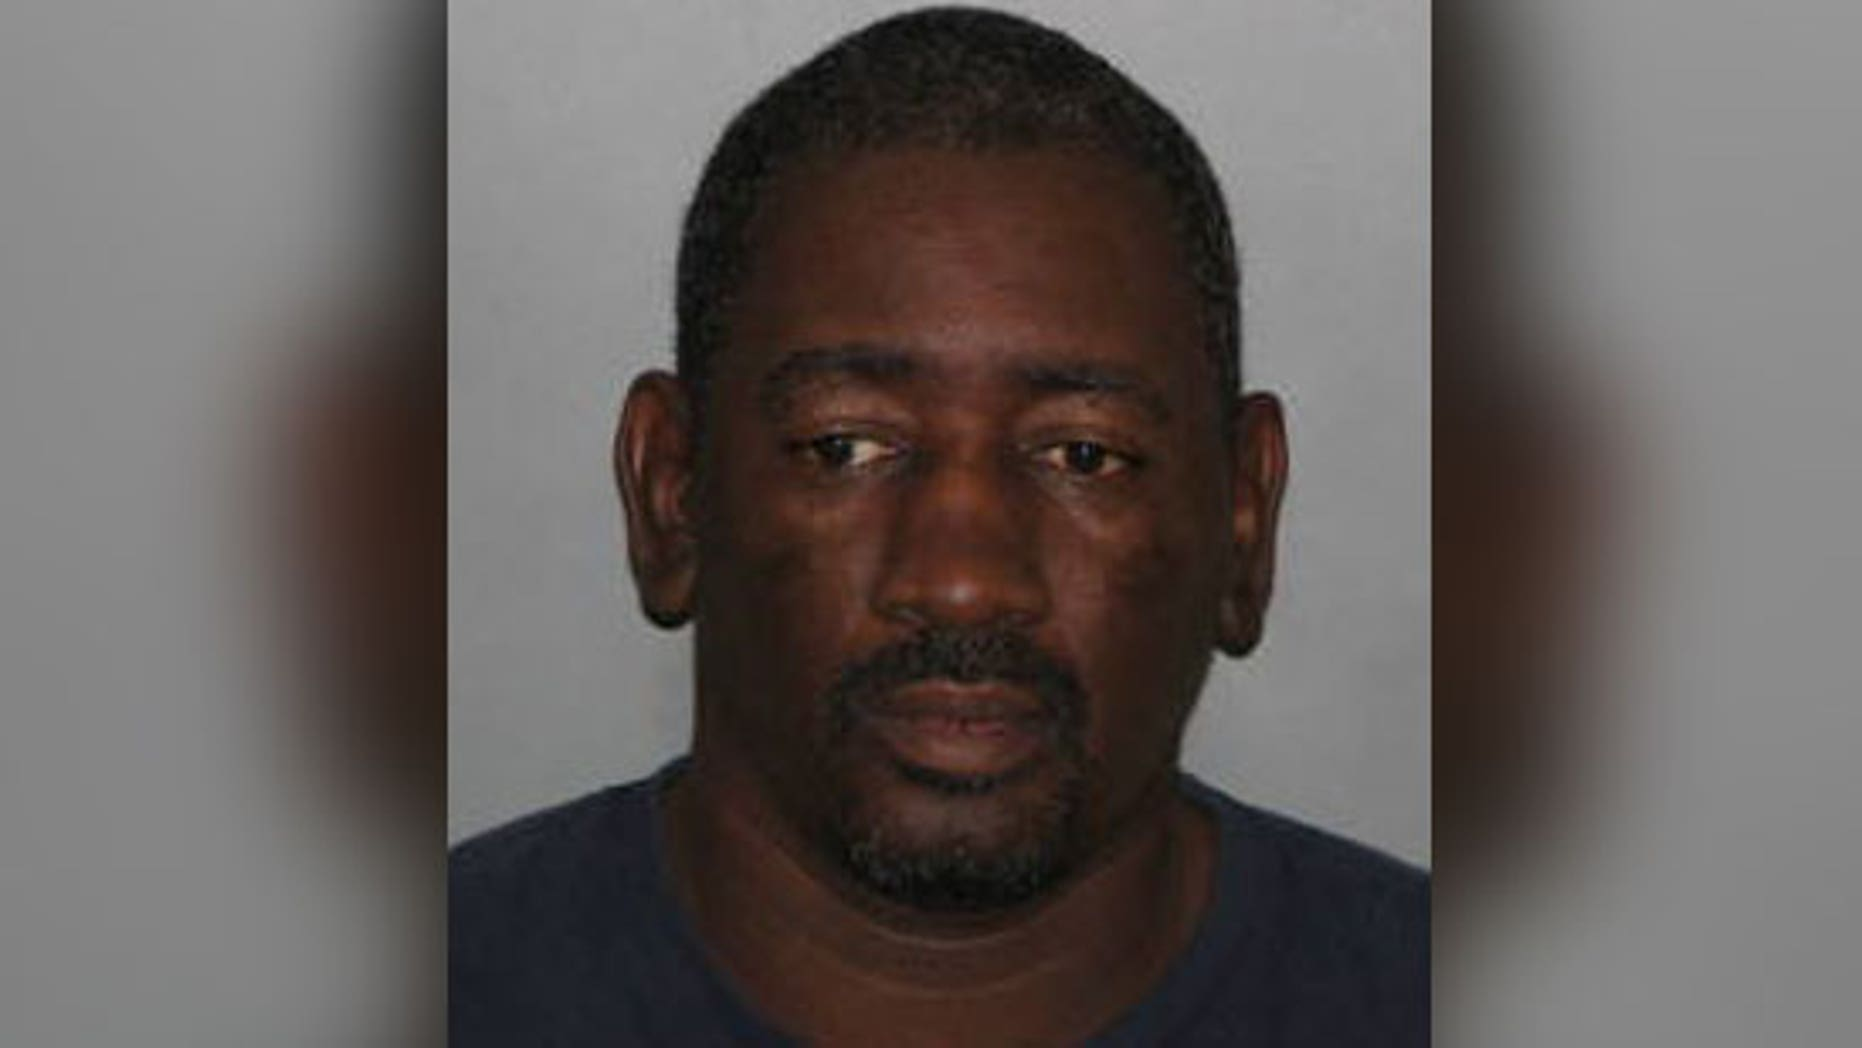 Donald Crump allegedly choked a customer when she complained about her cold fries.